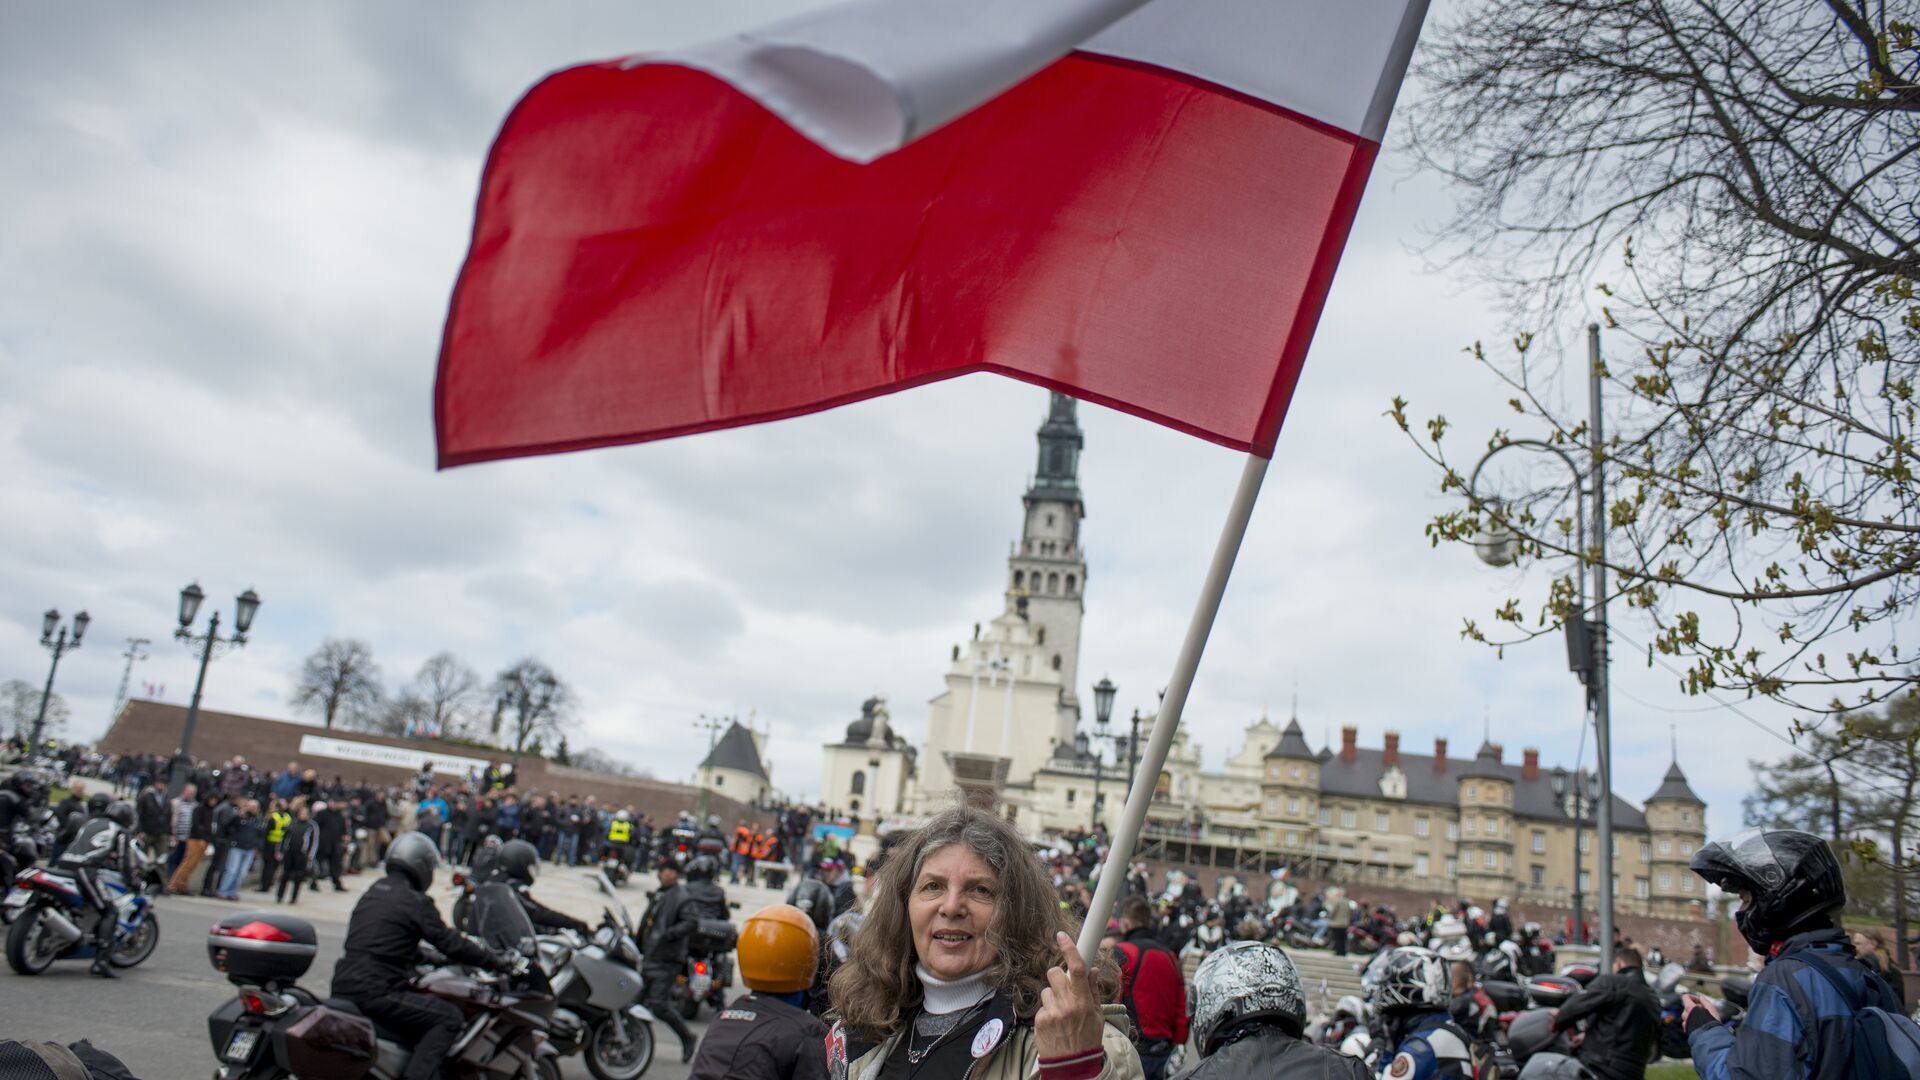 A woman waves a Polish flag in front of the Jasna Gora monastery during the annual Polish motorcyclists pilgrimage to the country's greatest place of pilgrimage hosting the Black Madonna of Czestochowa in Czestochowa, Poland, on April 19, 2015 - Sputnik International, 1920, 15.09.2021